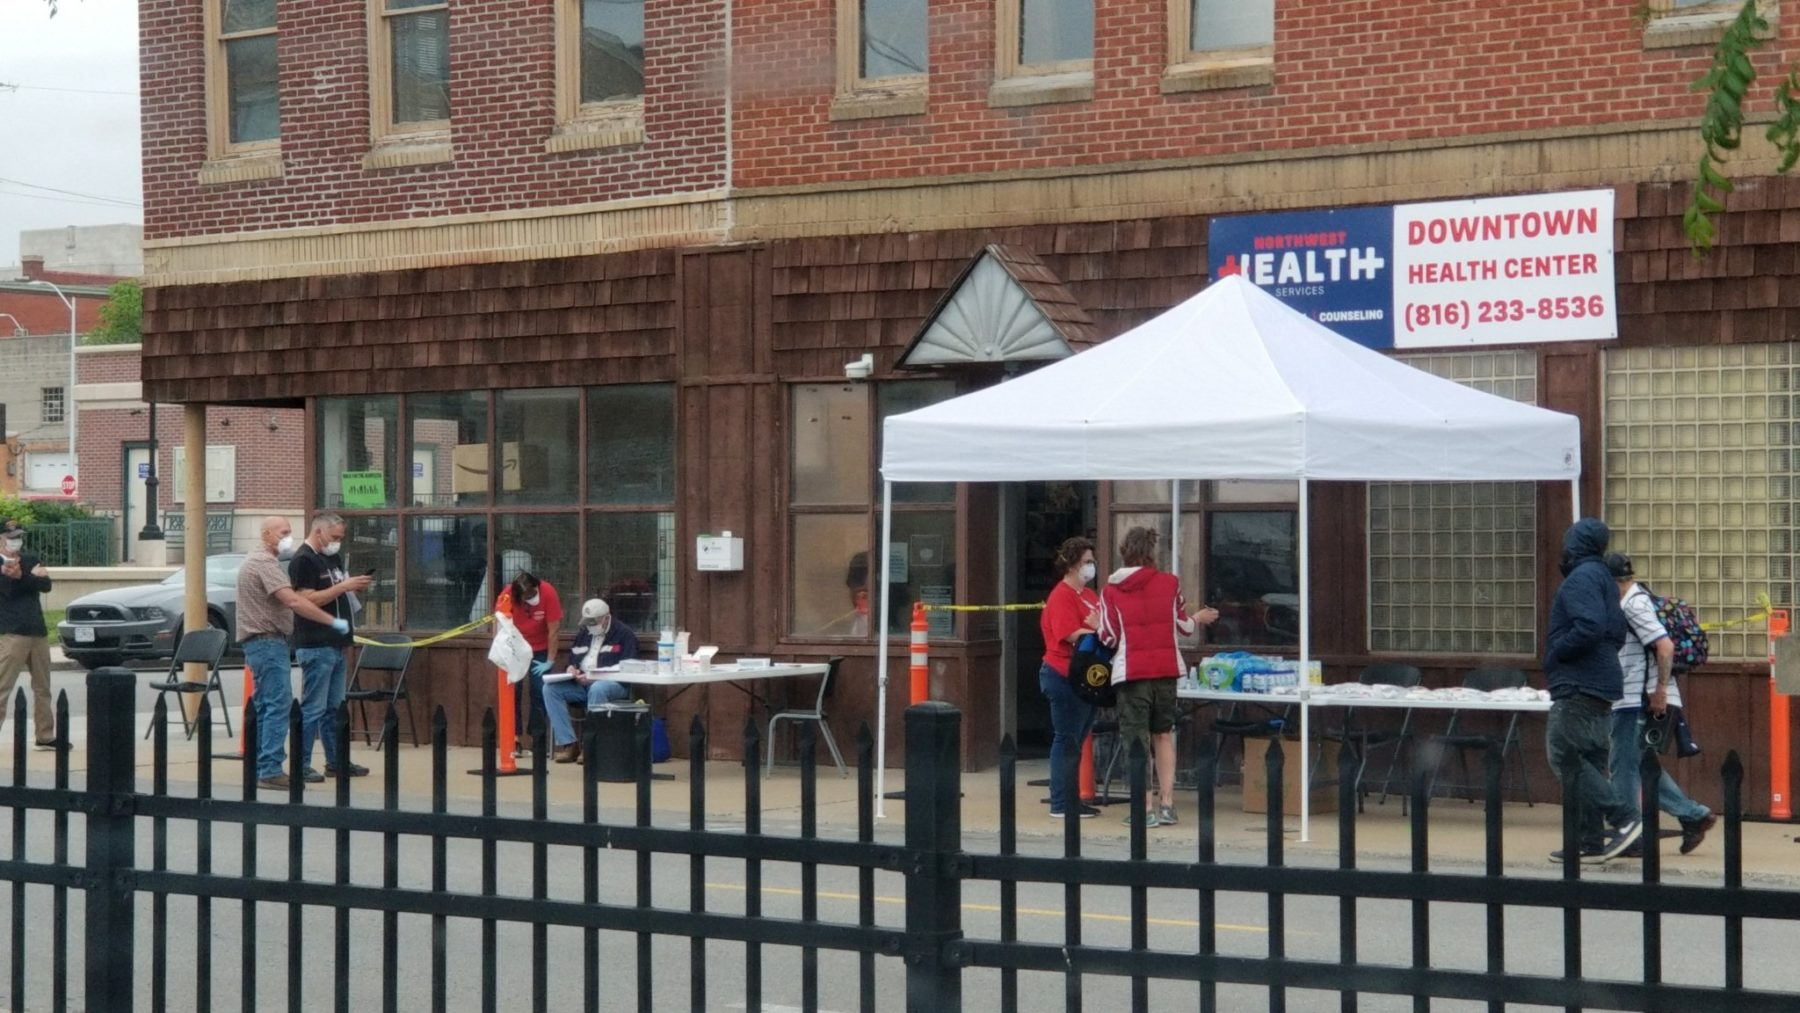 Northwest Health Services' Downtown Health Center offering free Covid-19 tests to people experiencing homelessness on May 11. (Photo Courtesy of NHS)